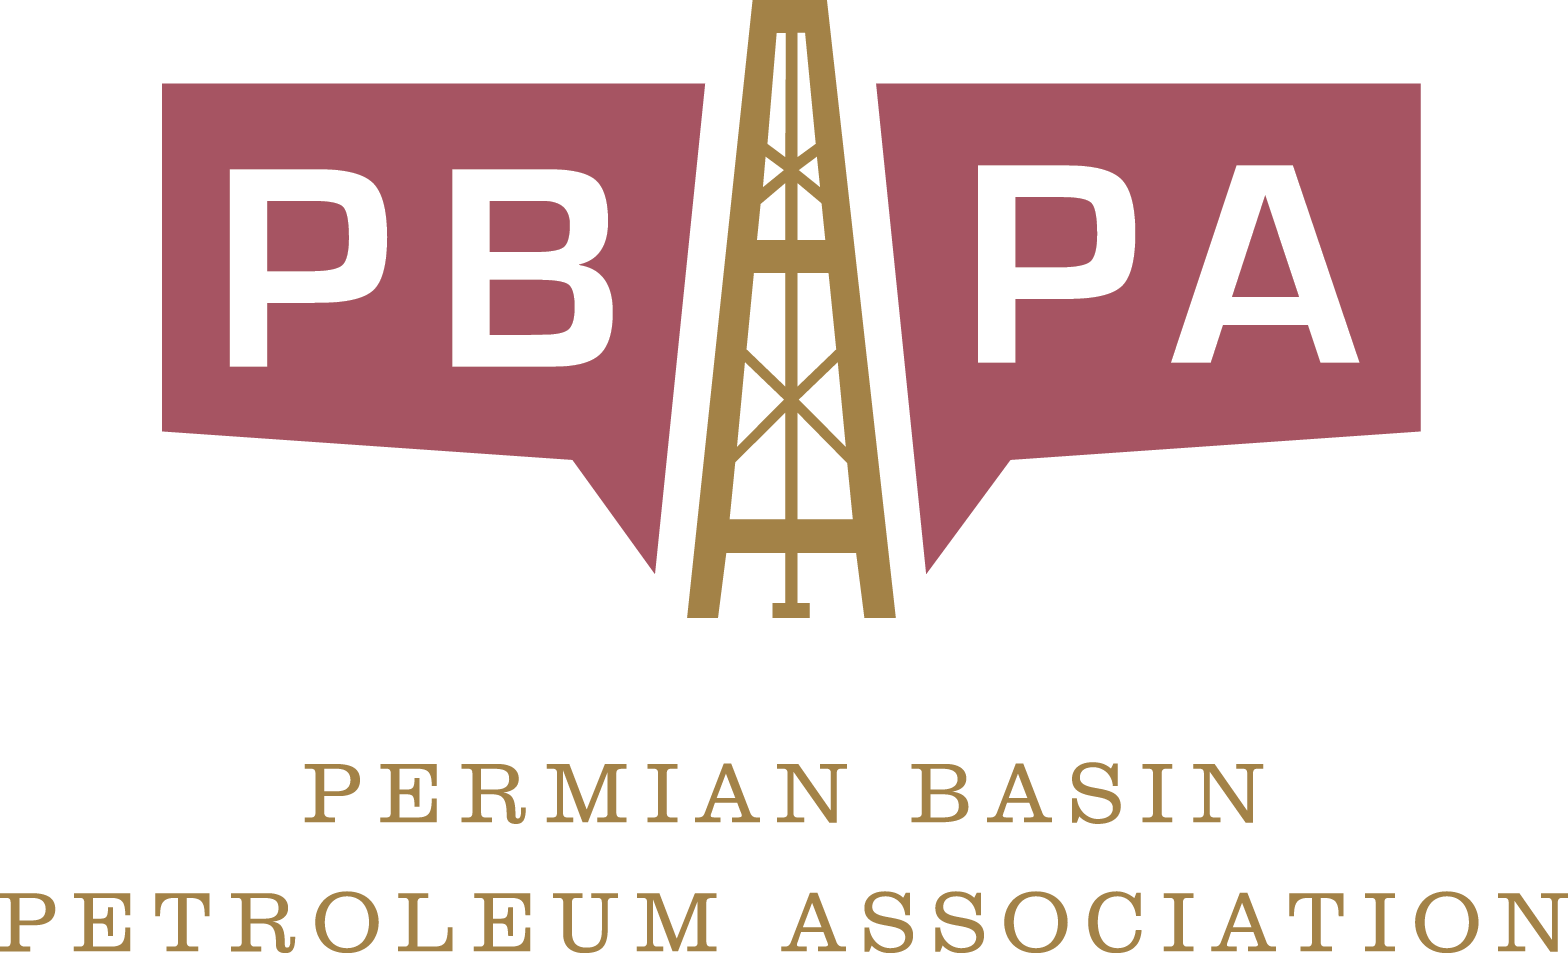 Permian Basin Petroleum Association